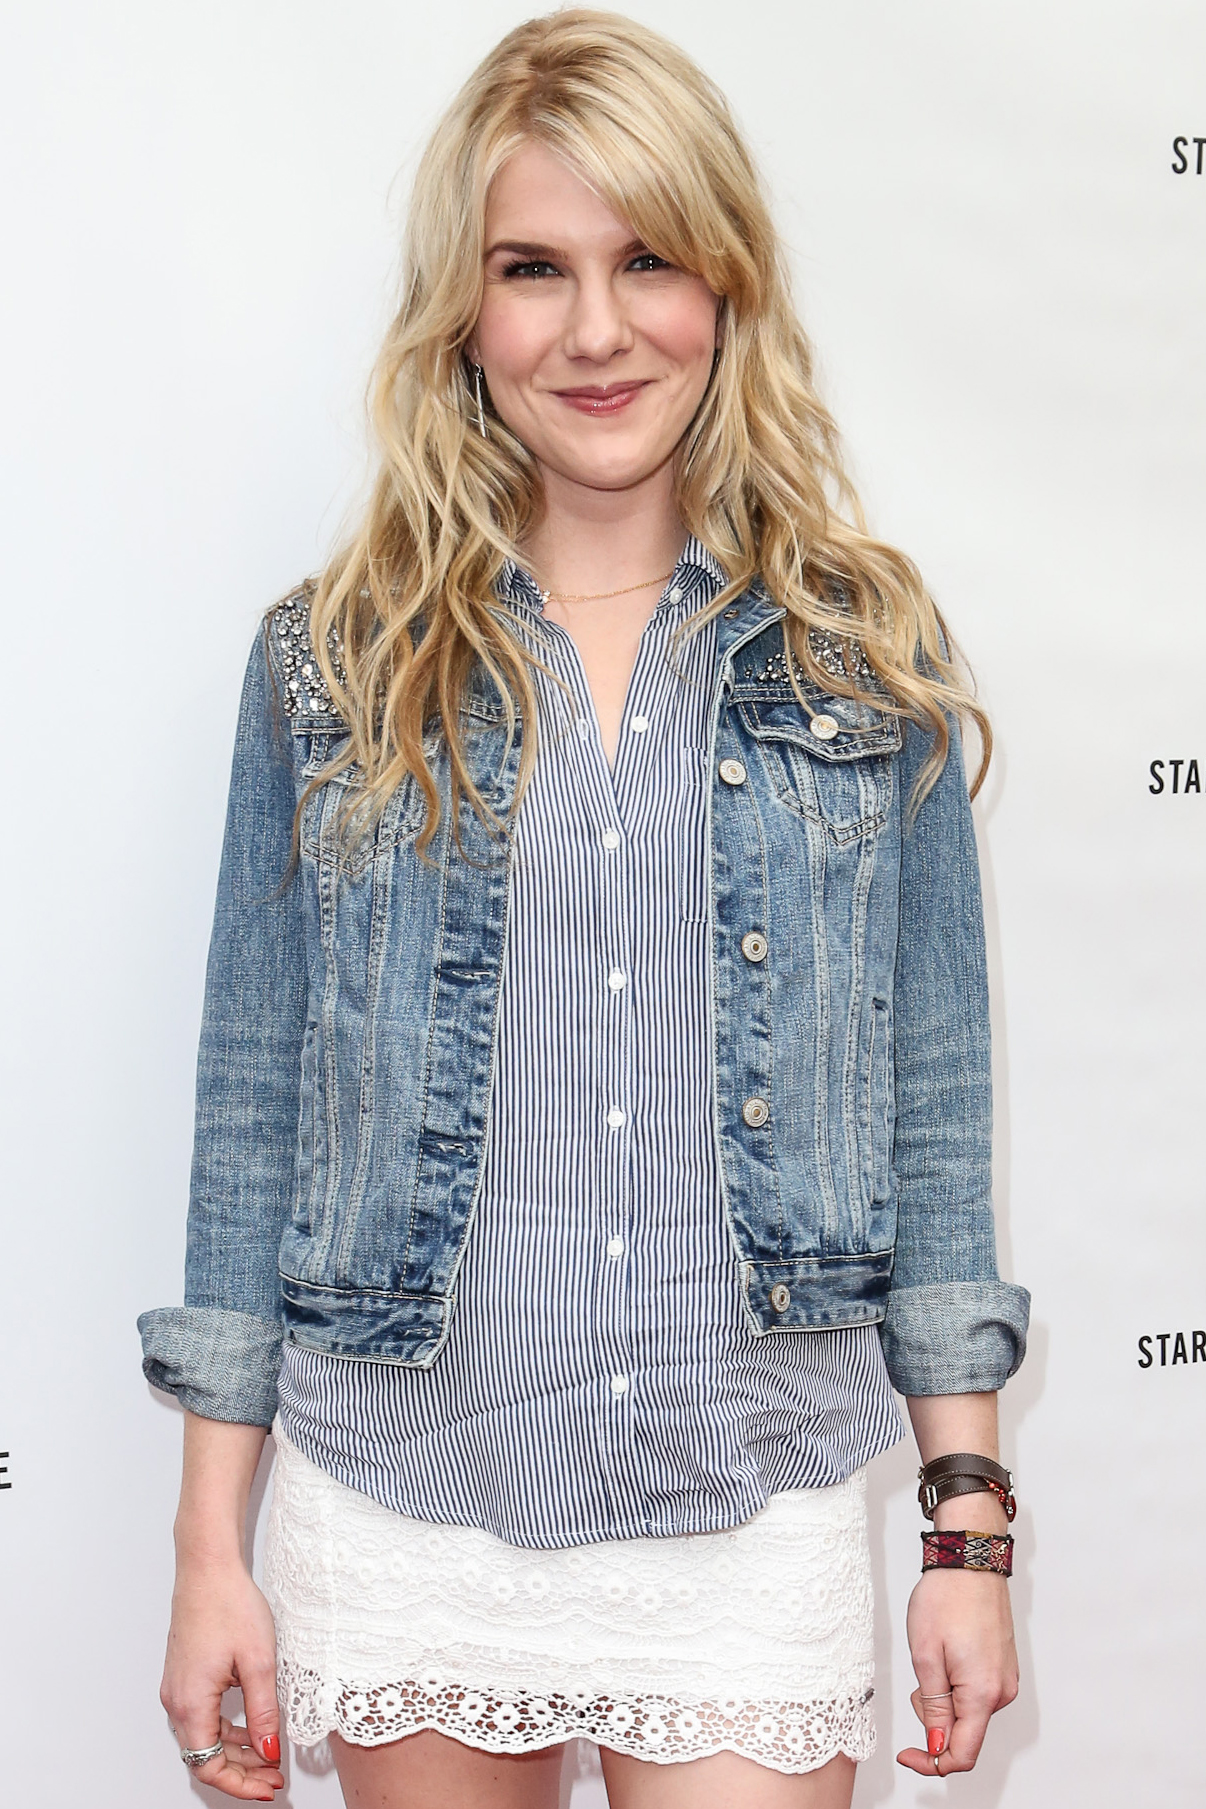 Lily Rabe high quality wallpapers